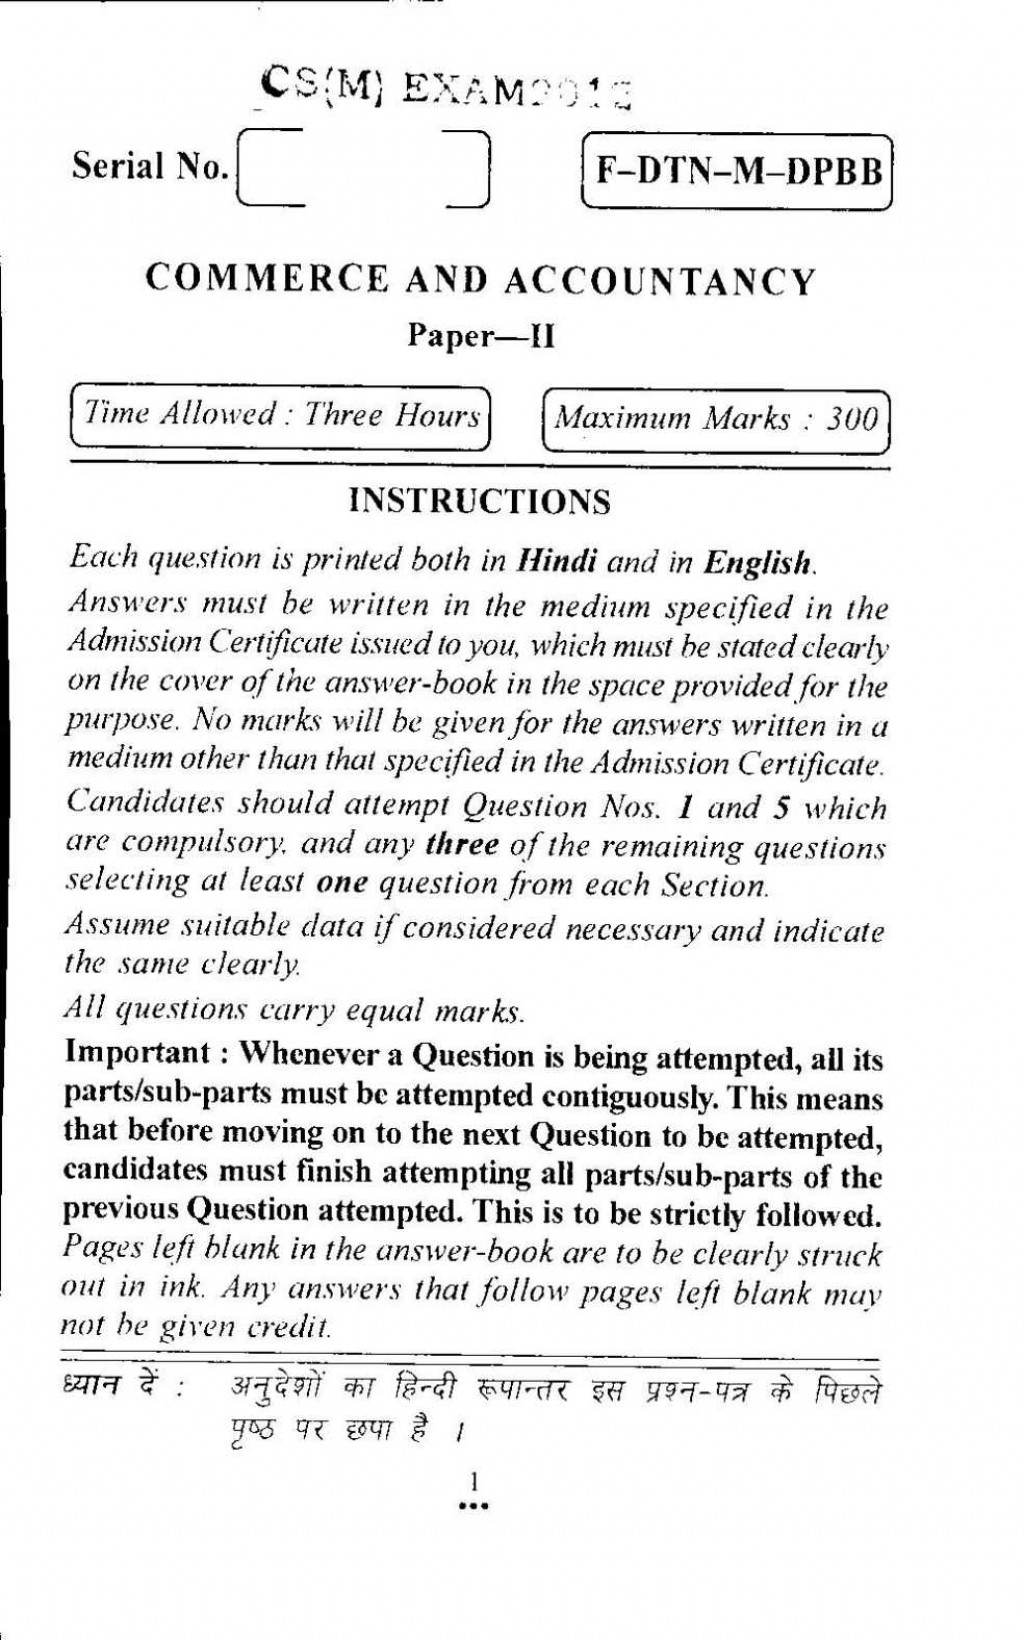 007 Racism Today Essay Civil Services Examination Commerce And Accountancy Paper Ii Previous Years Que Dreaded Large